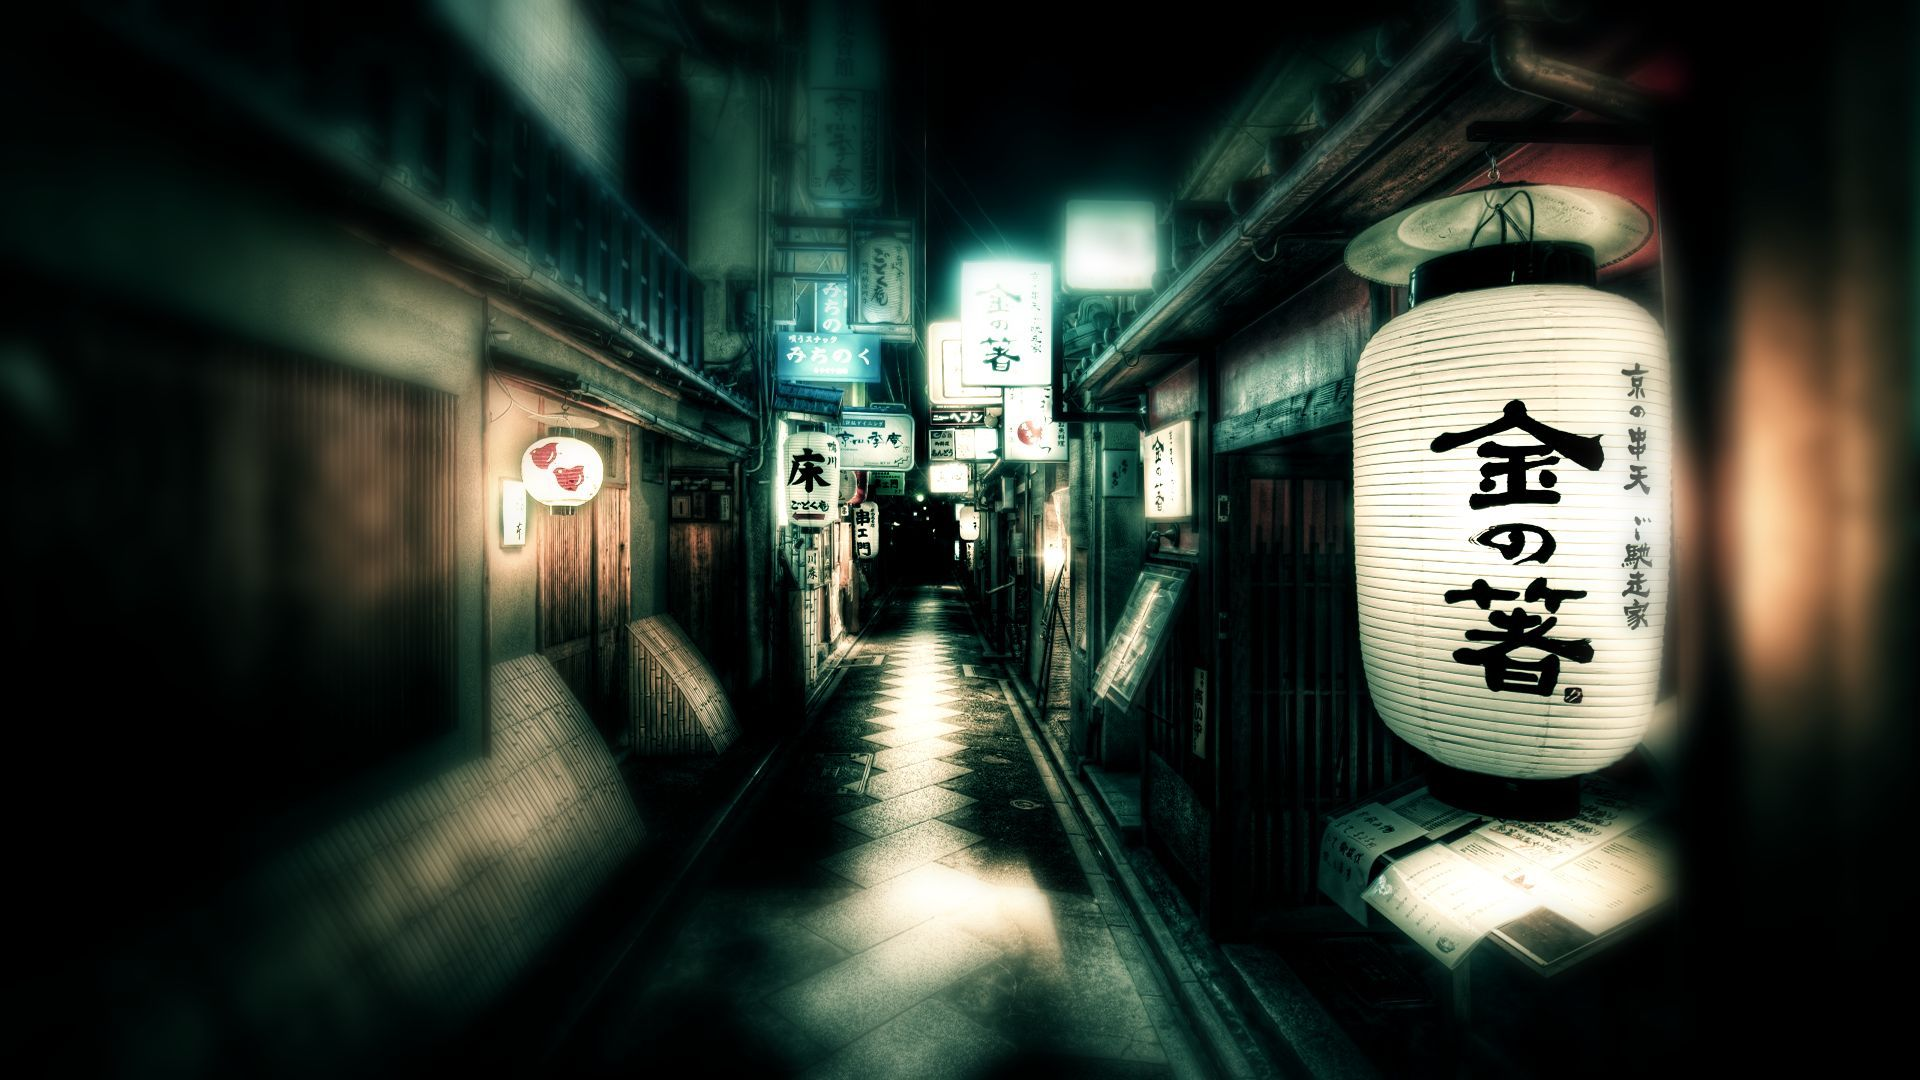 Japanese Street Wallpapers   Top Japanese Street Backgrounds 1920x1080